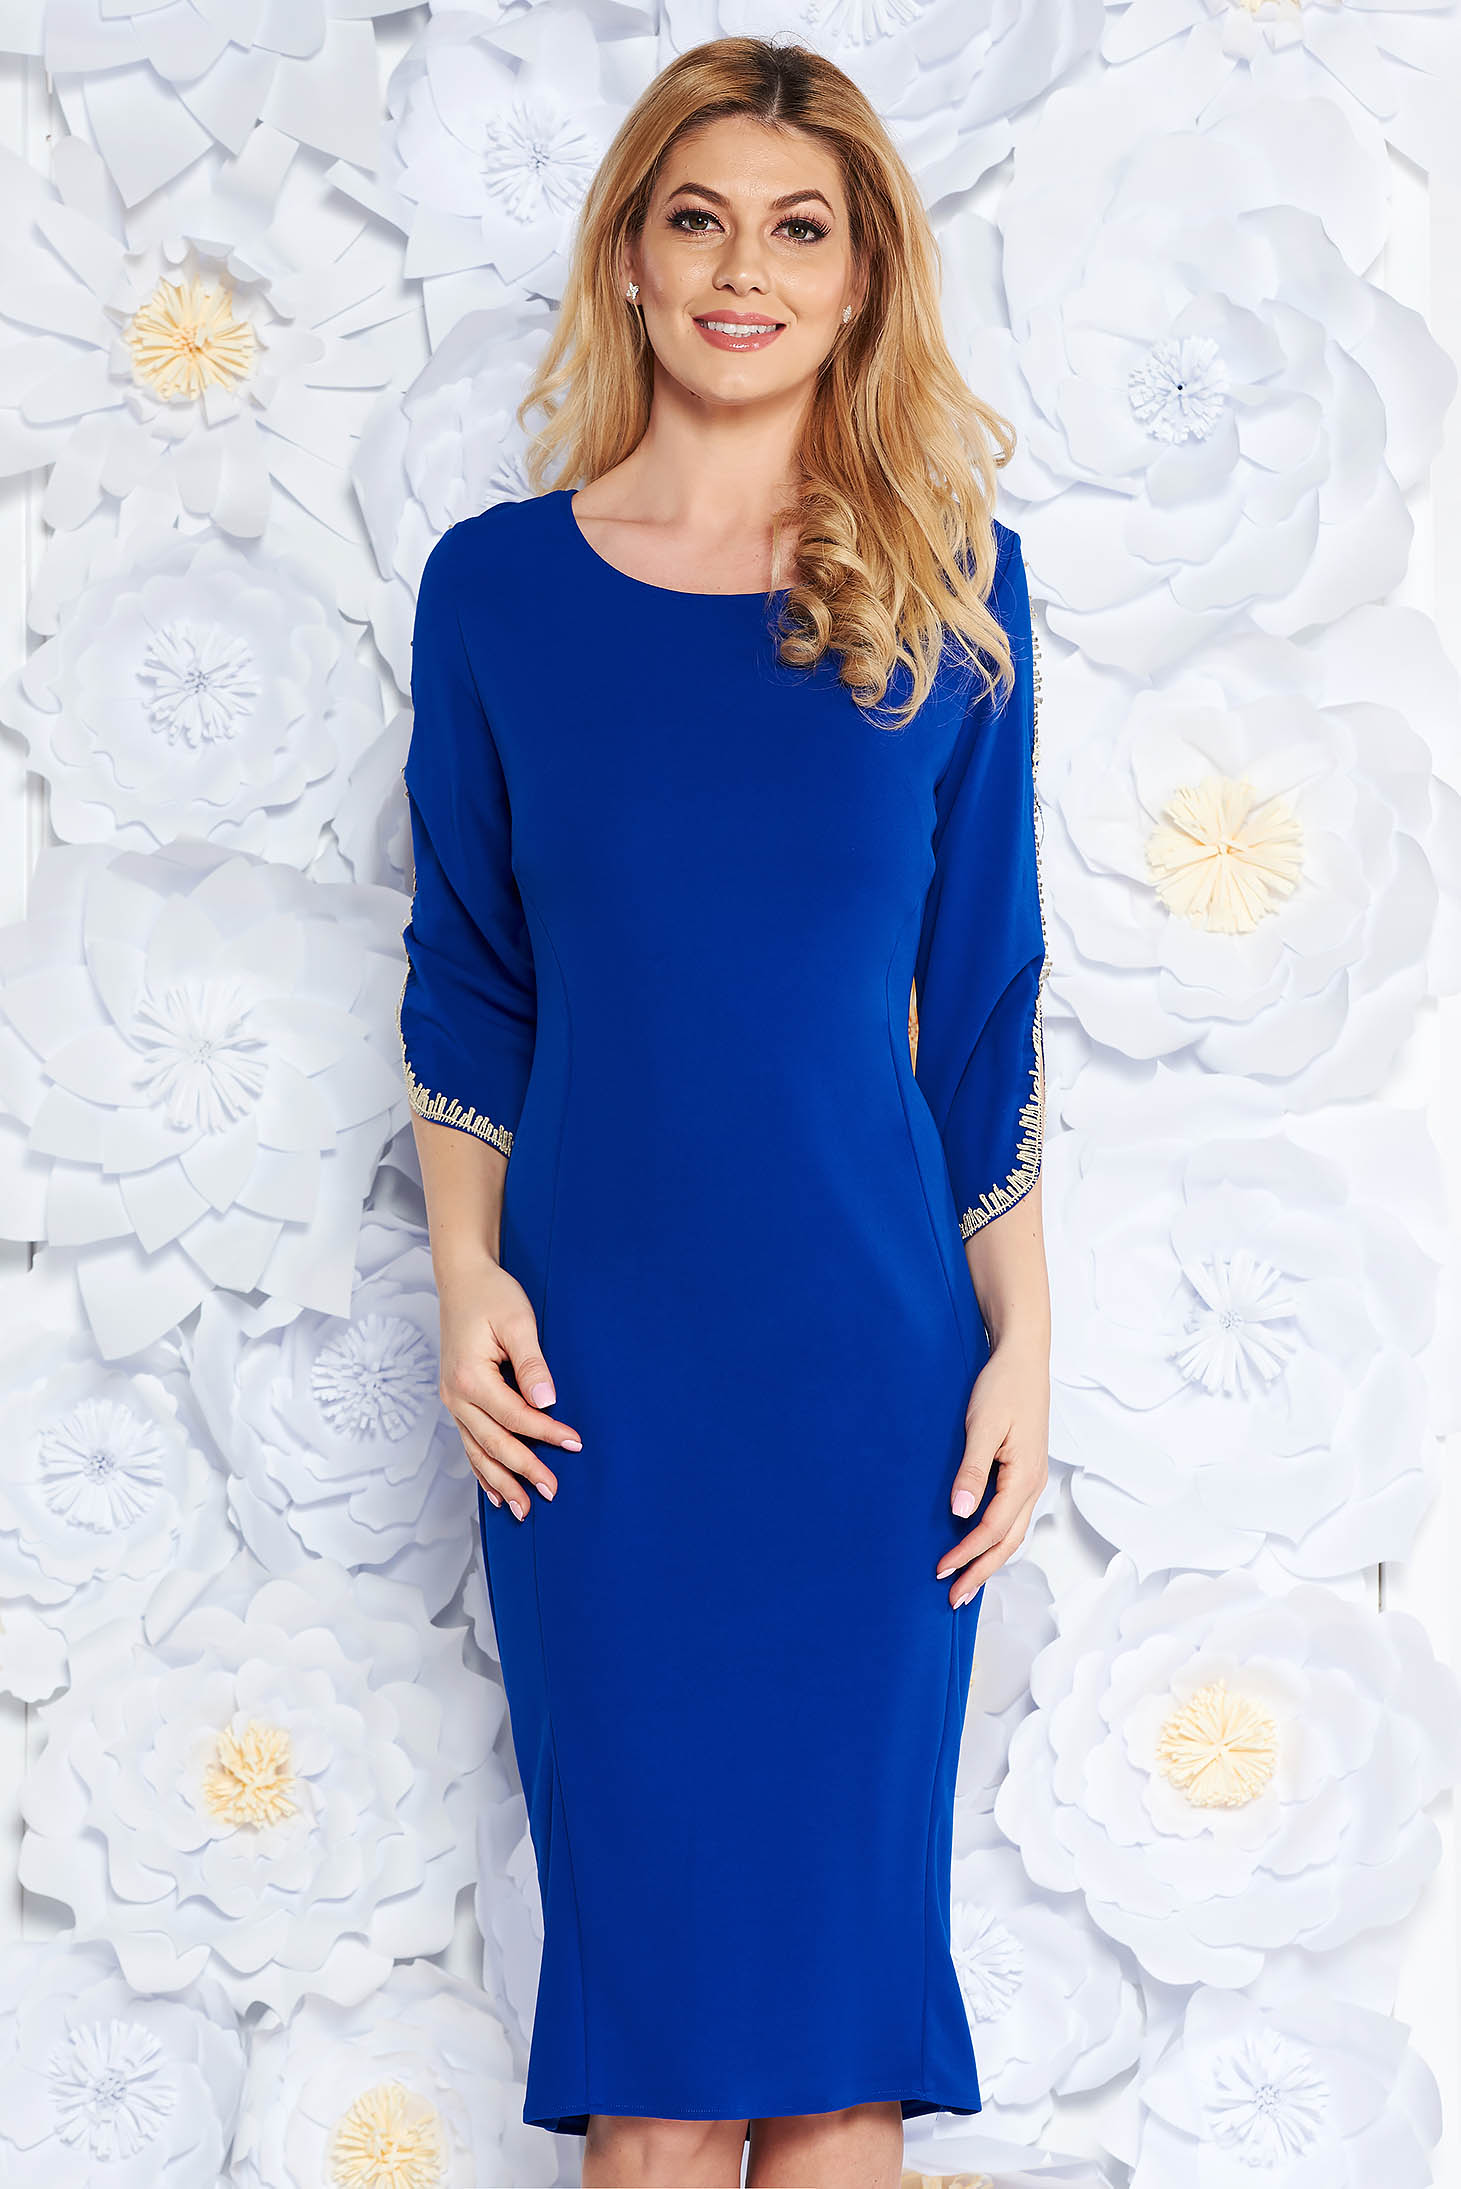 Blue elegant pencil dress from elastic fabric with embroidery details with 3/4 sleeves